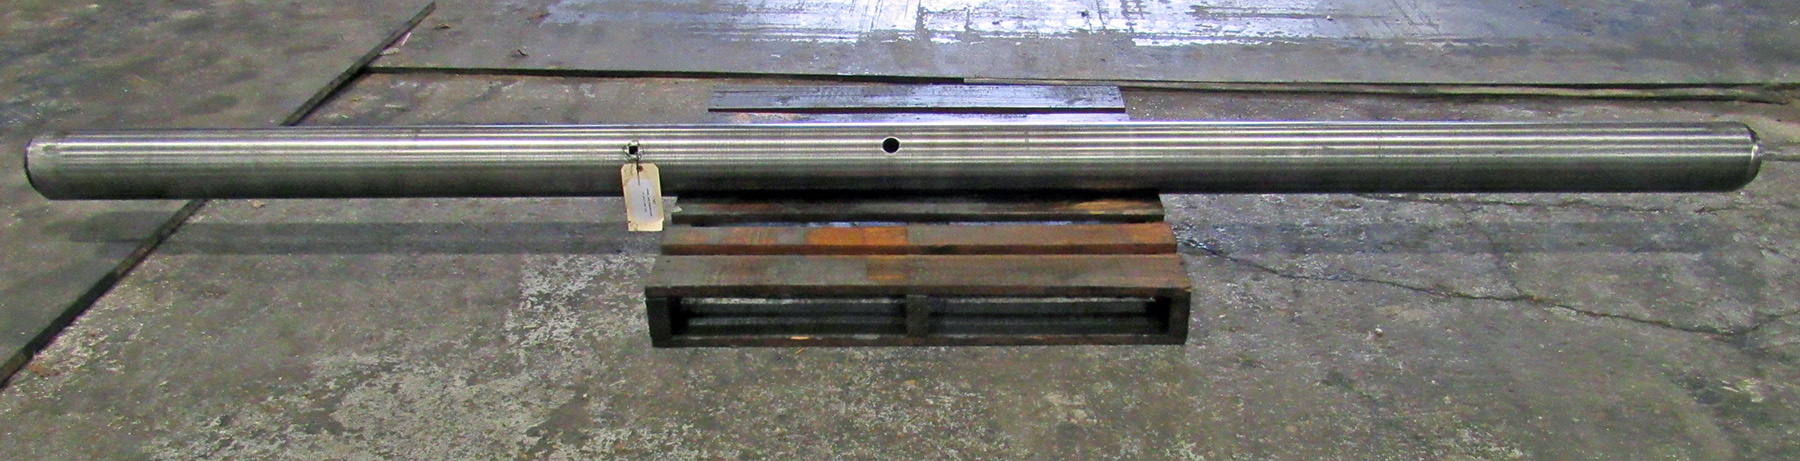 "USED, 6"" X 149"" LINE BORING BAR"